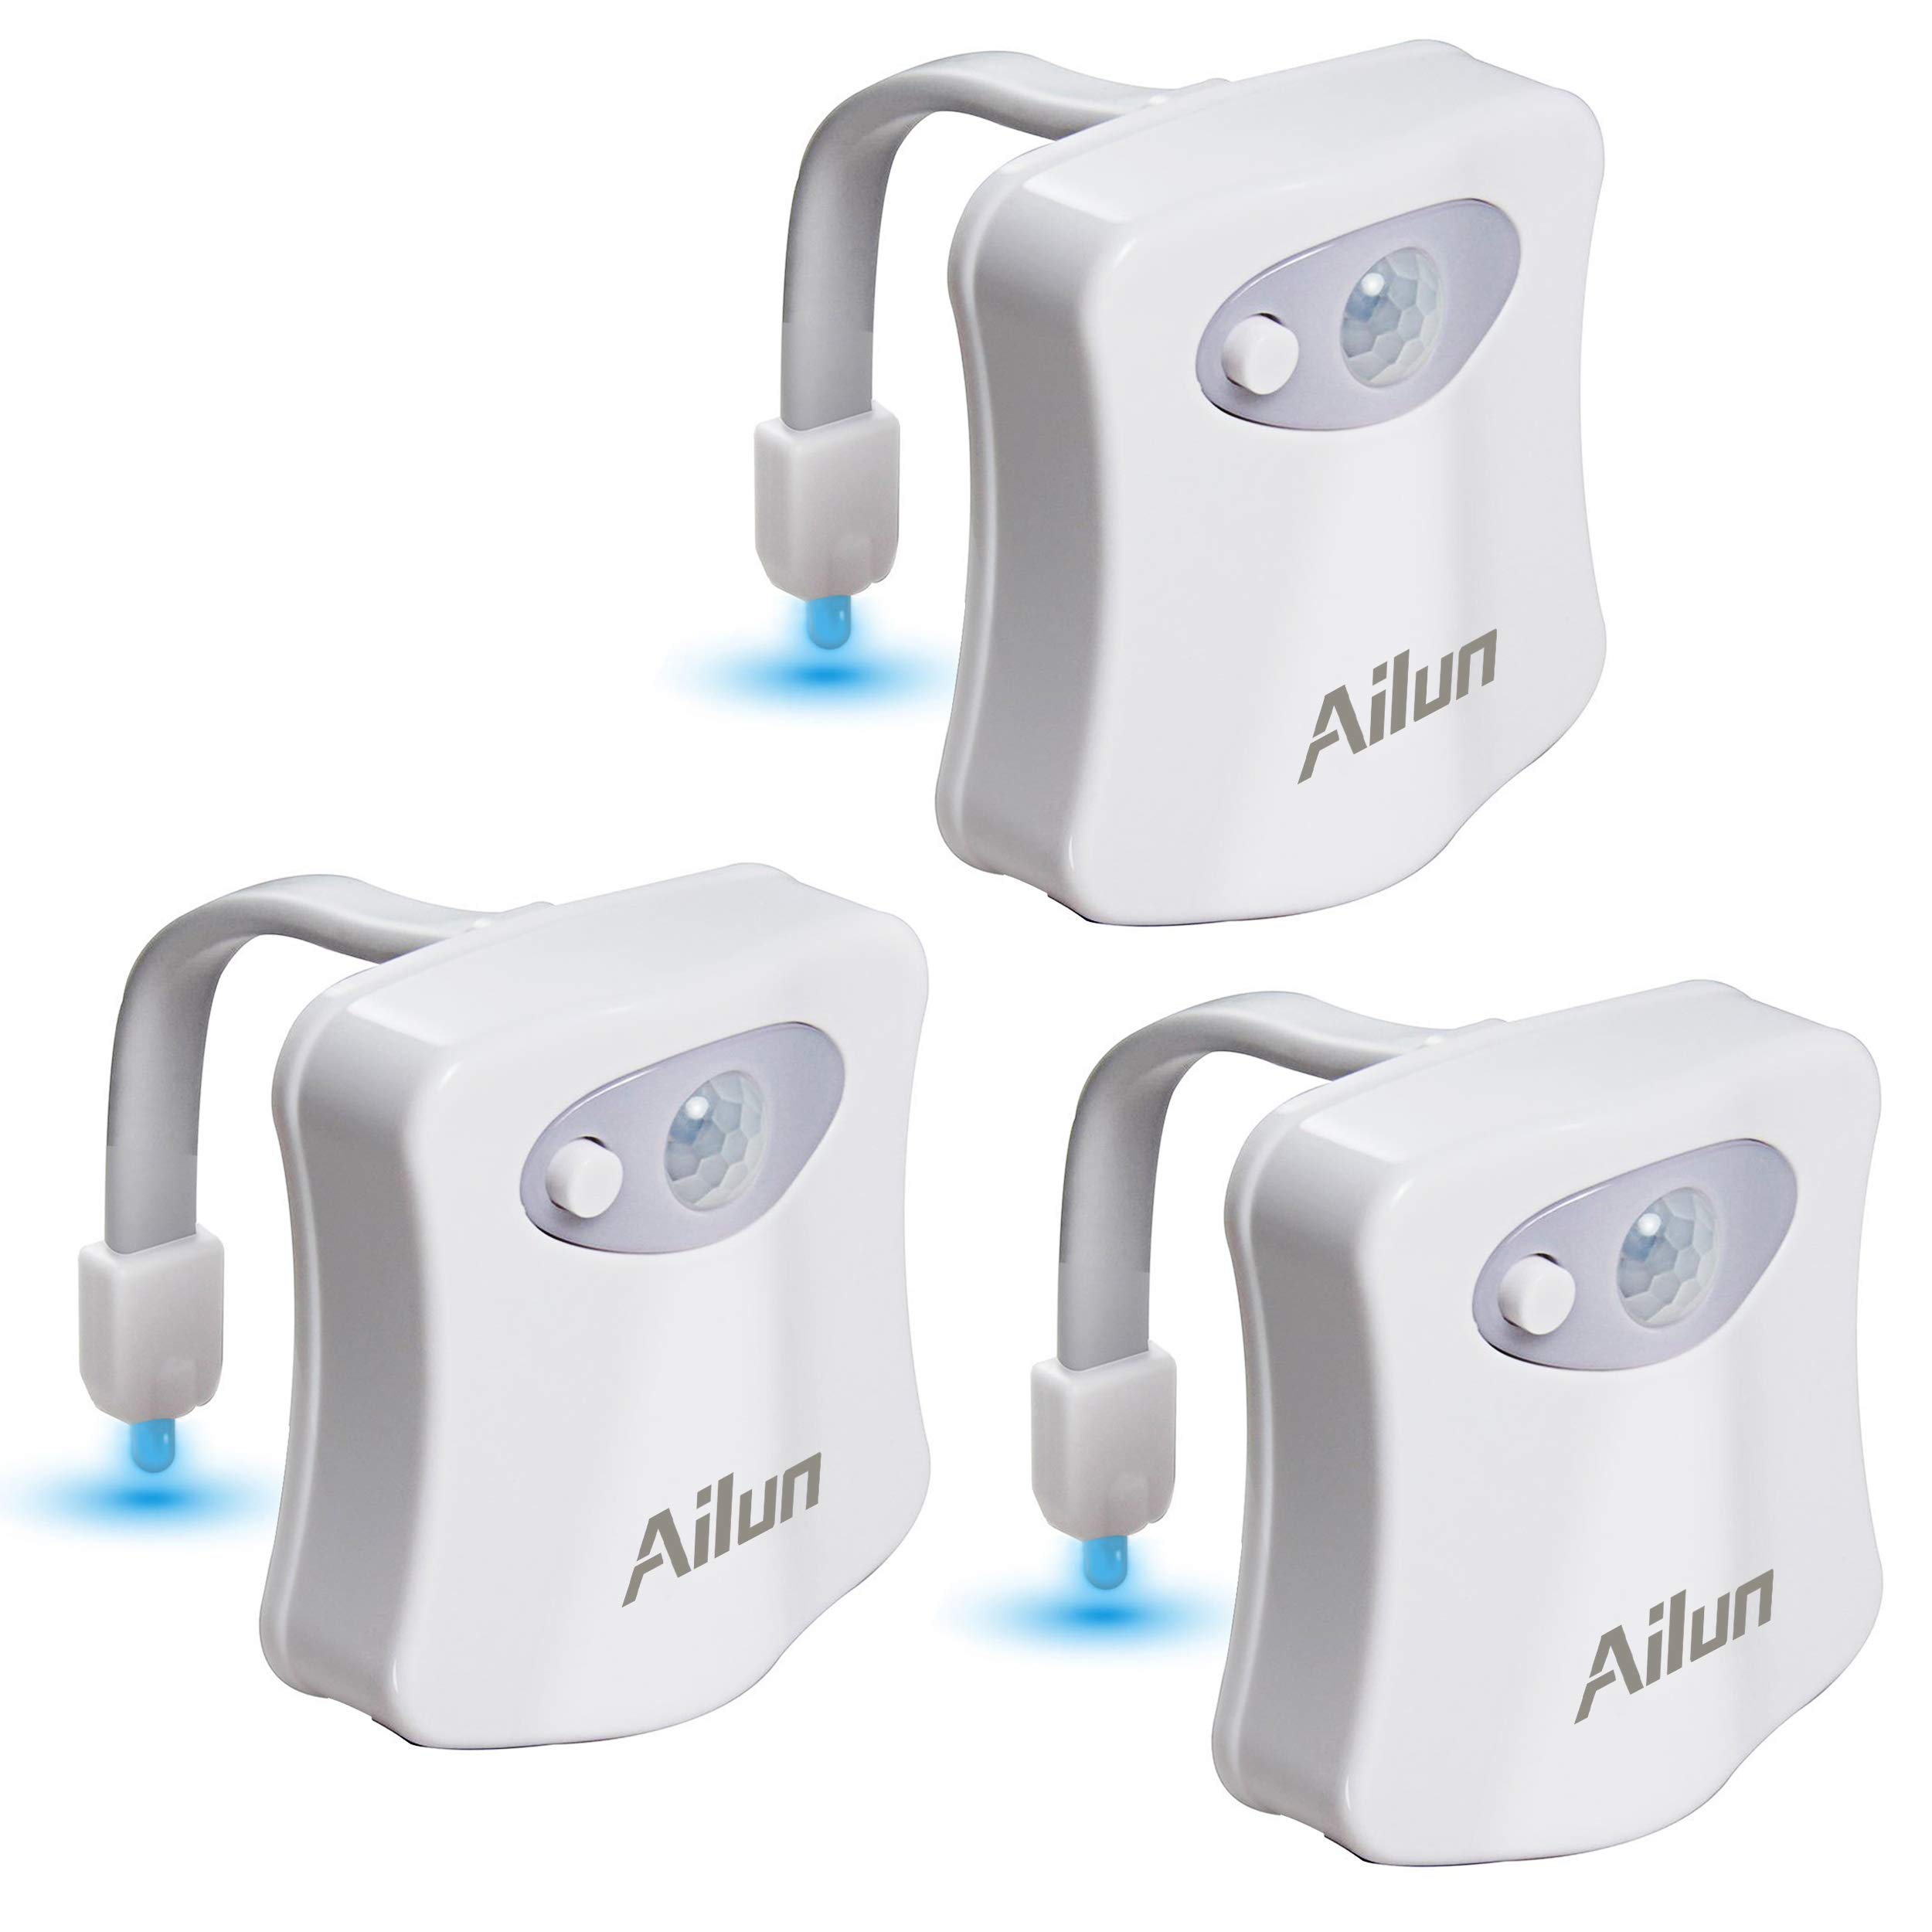 Ailun Activated Nightlight Decorating Combination